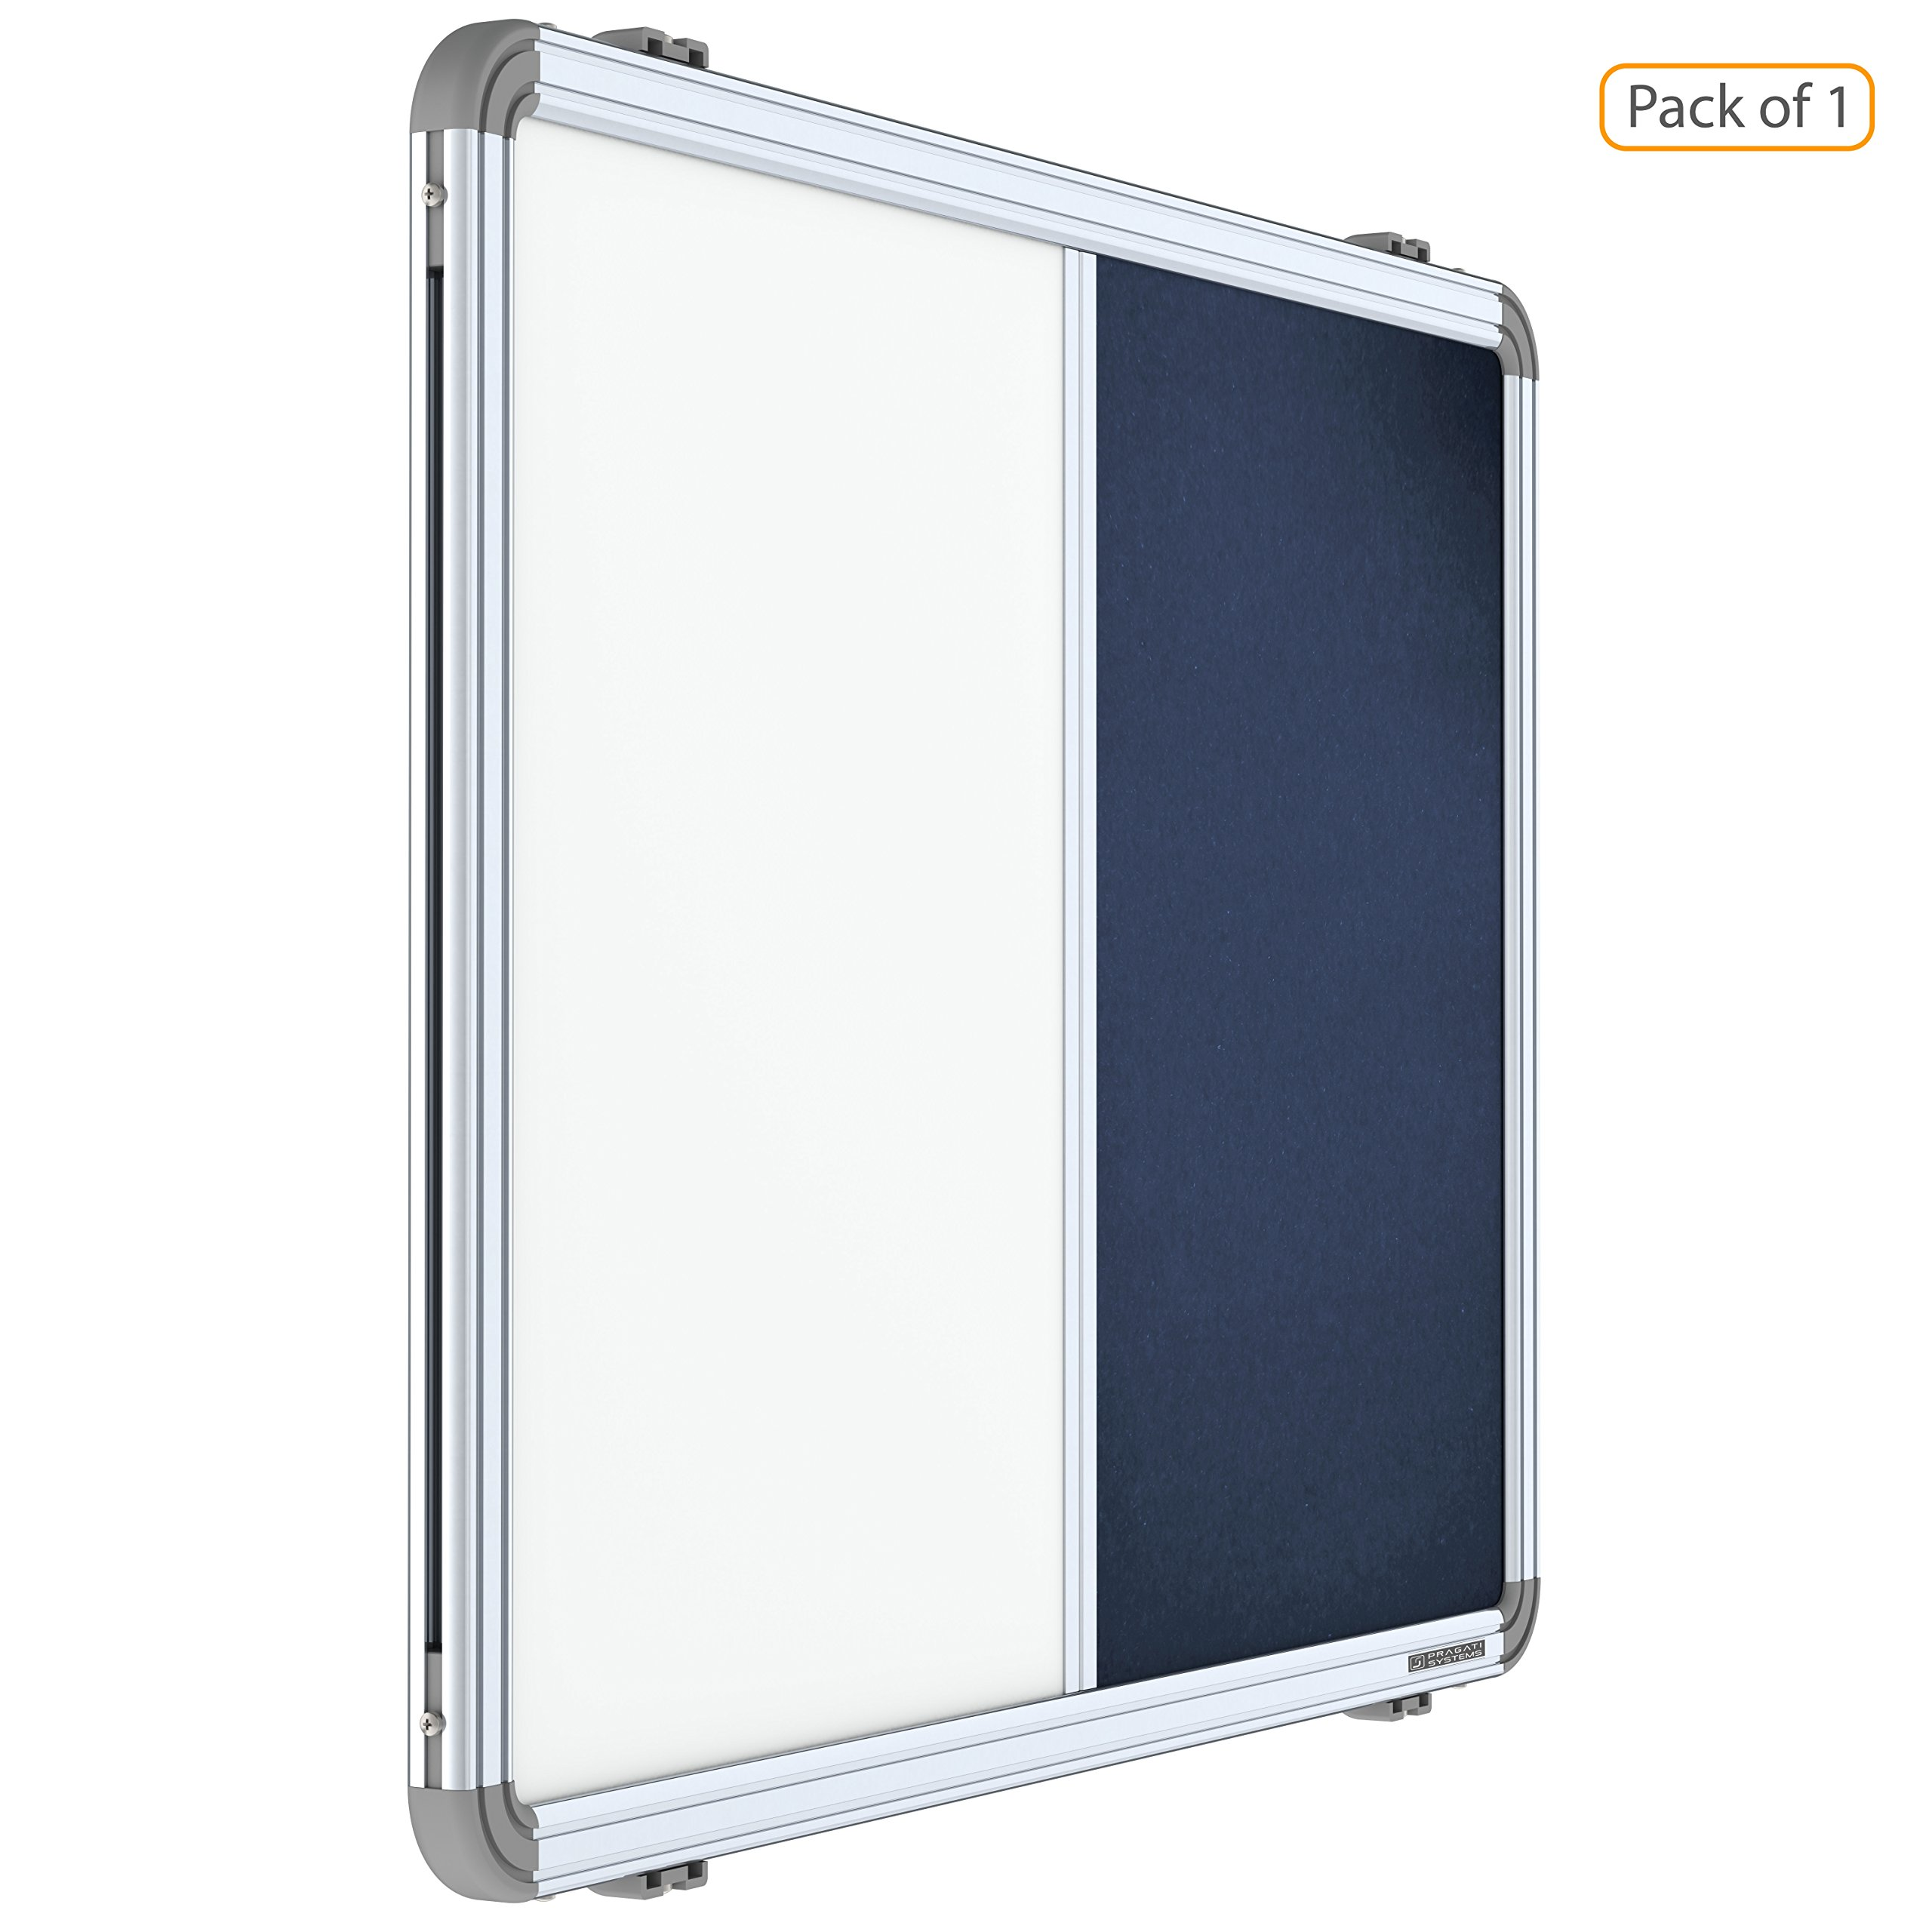 Pragati Systems® Prima Combination Board (Magnetic Whiteboard with Blue Pin-up Notice Board) for Home, Office & School, Heavy-Duty Aluminium Frame, 2x3 Feet (Pack of 1) product image